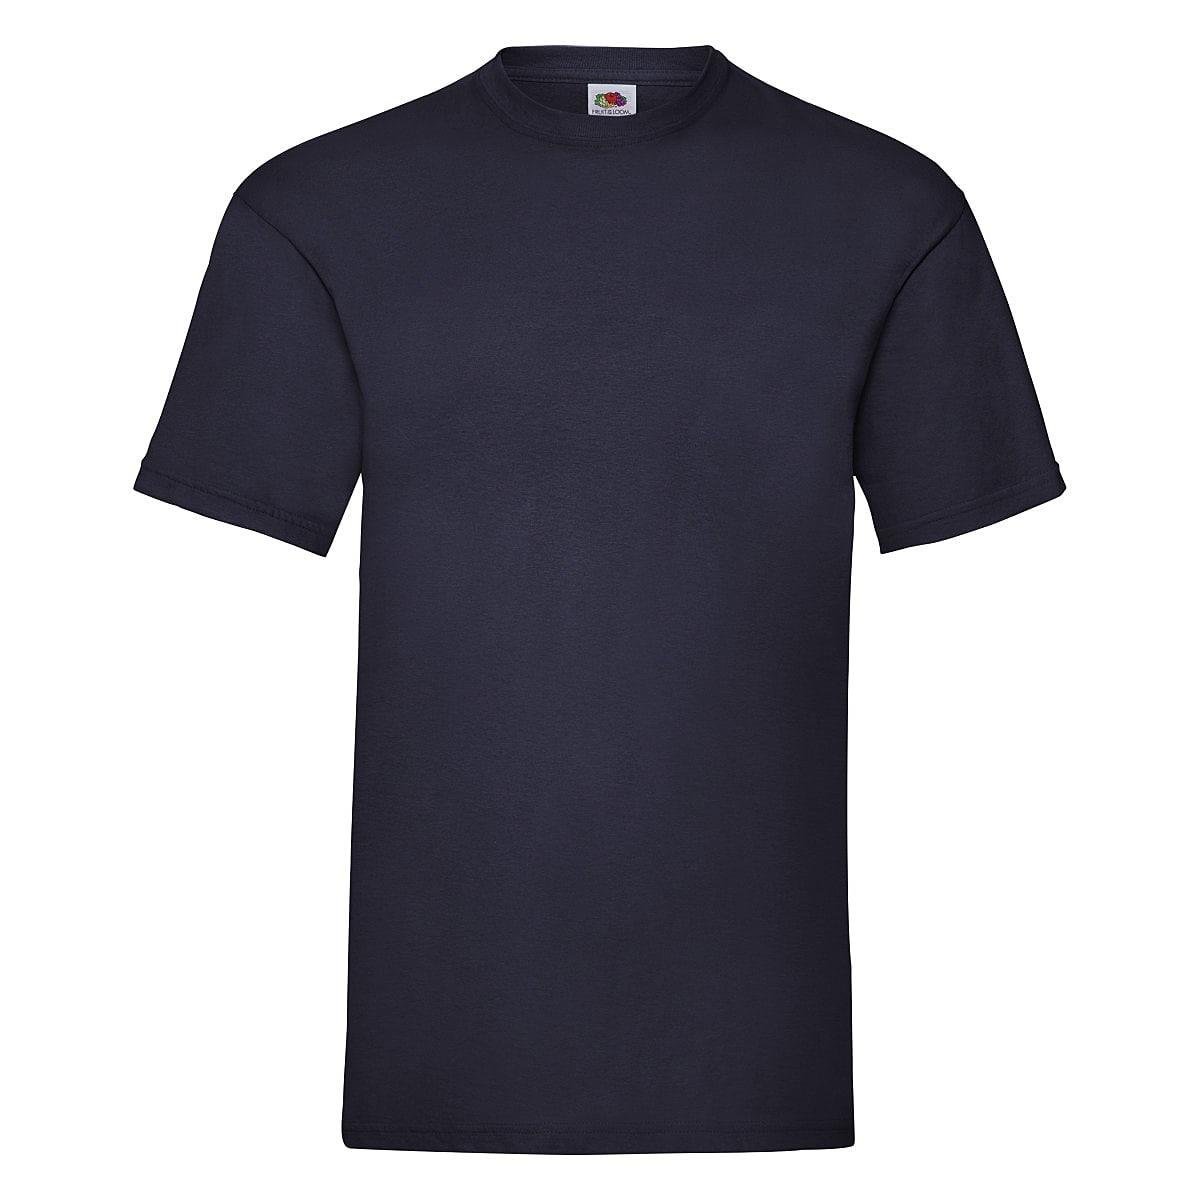 Fruit Of The Loom Valueweight T-Shirt in Deep Navy (Product Code: 61036)